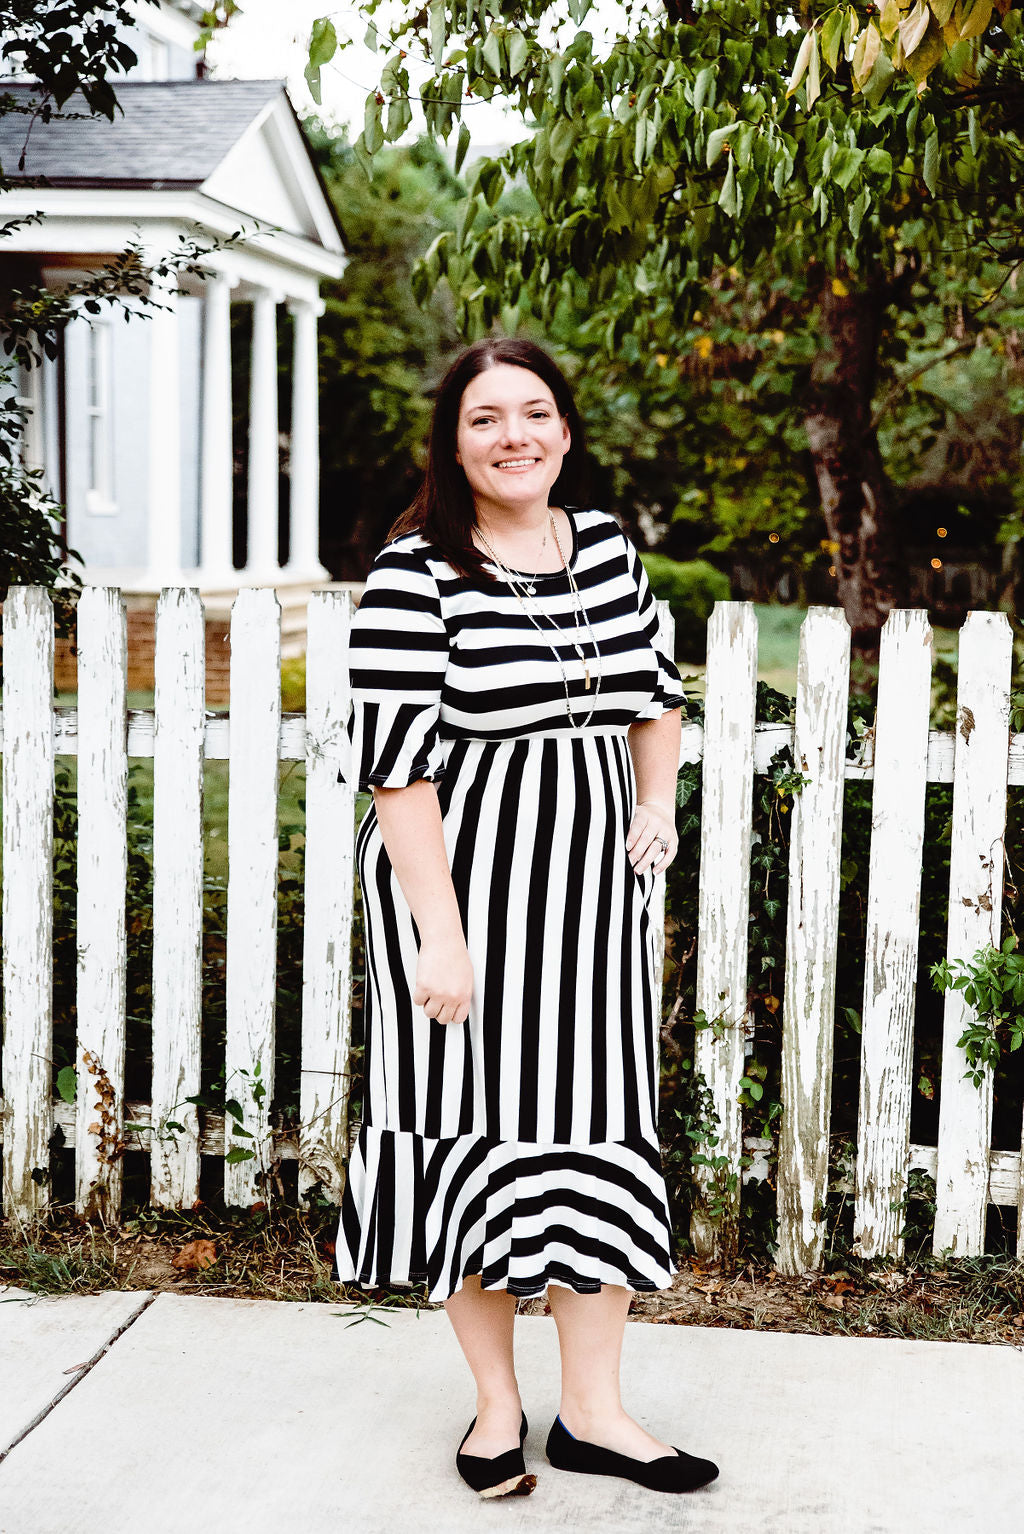 Undeniable Beauty - Black/White Stripe Dress